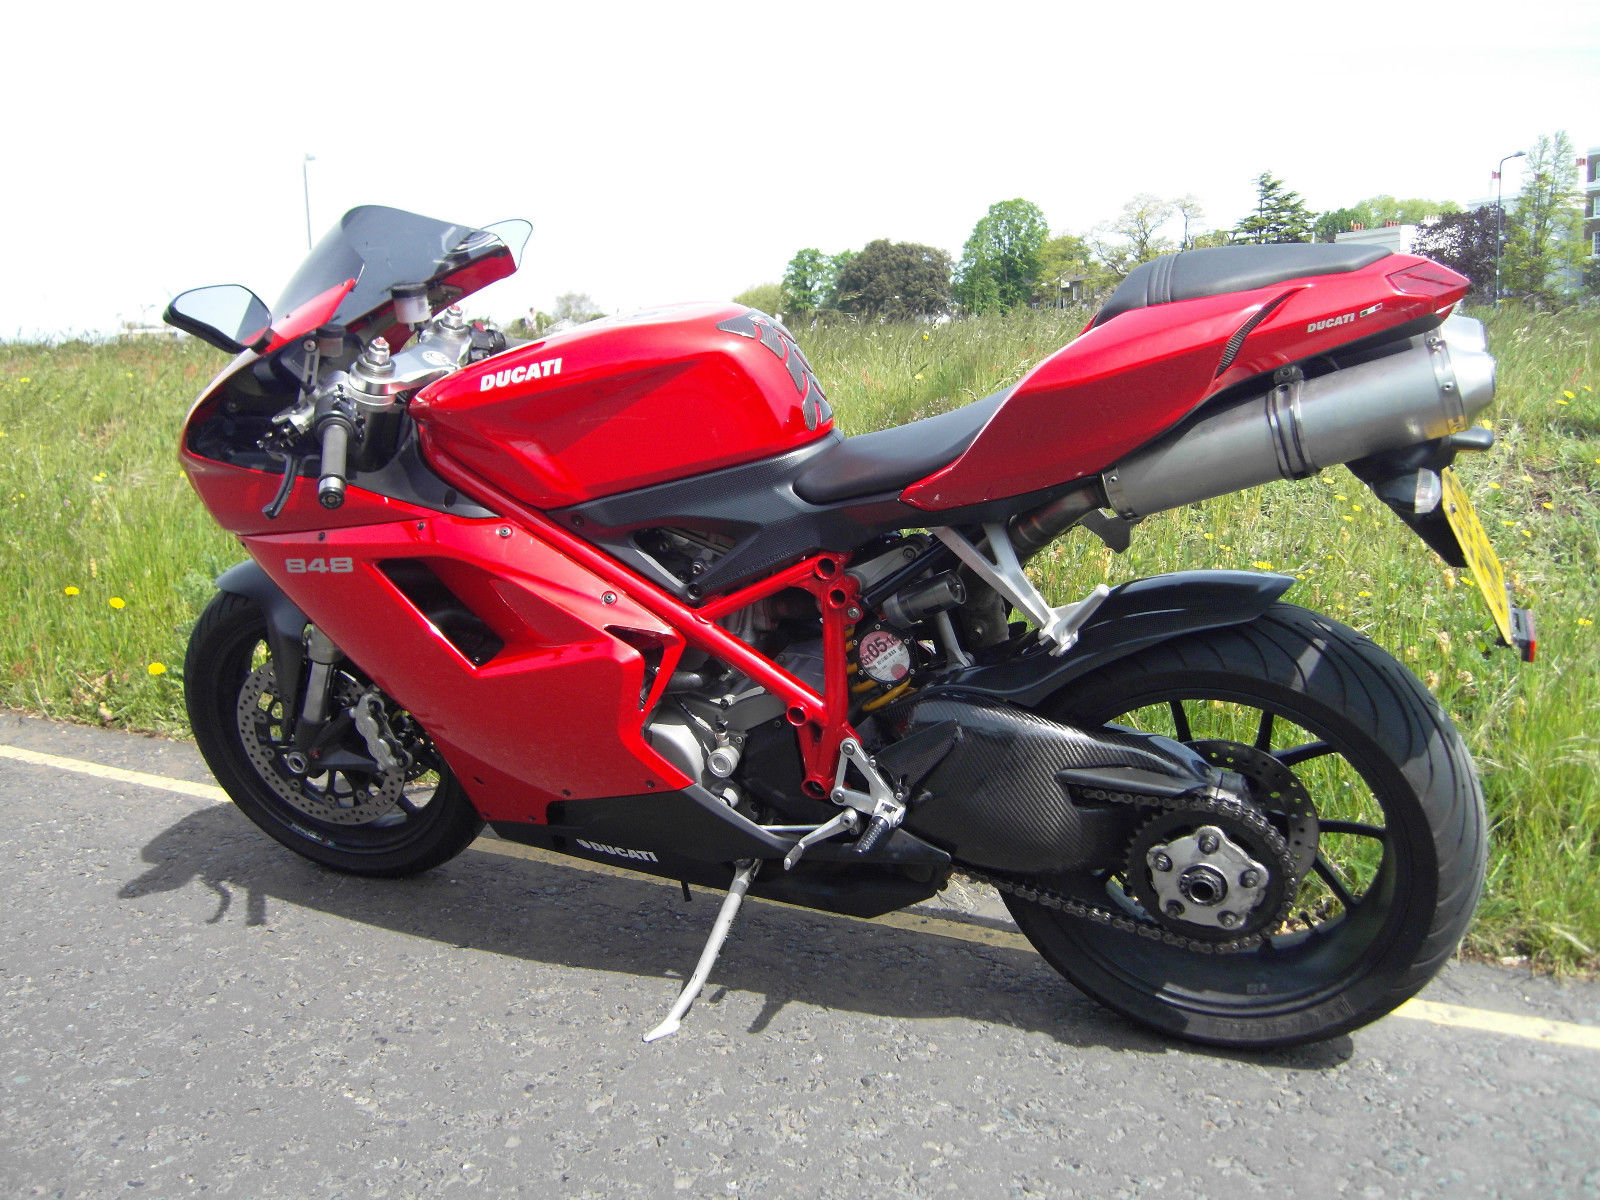 ducati 848 2008 red stunning fully serviced ducati hypermotard 821 service manual download ducati hypermotard 821 service manual